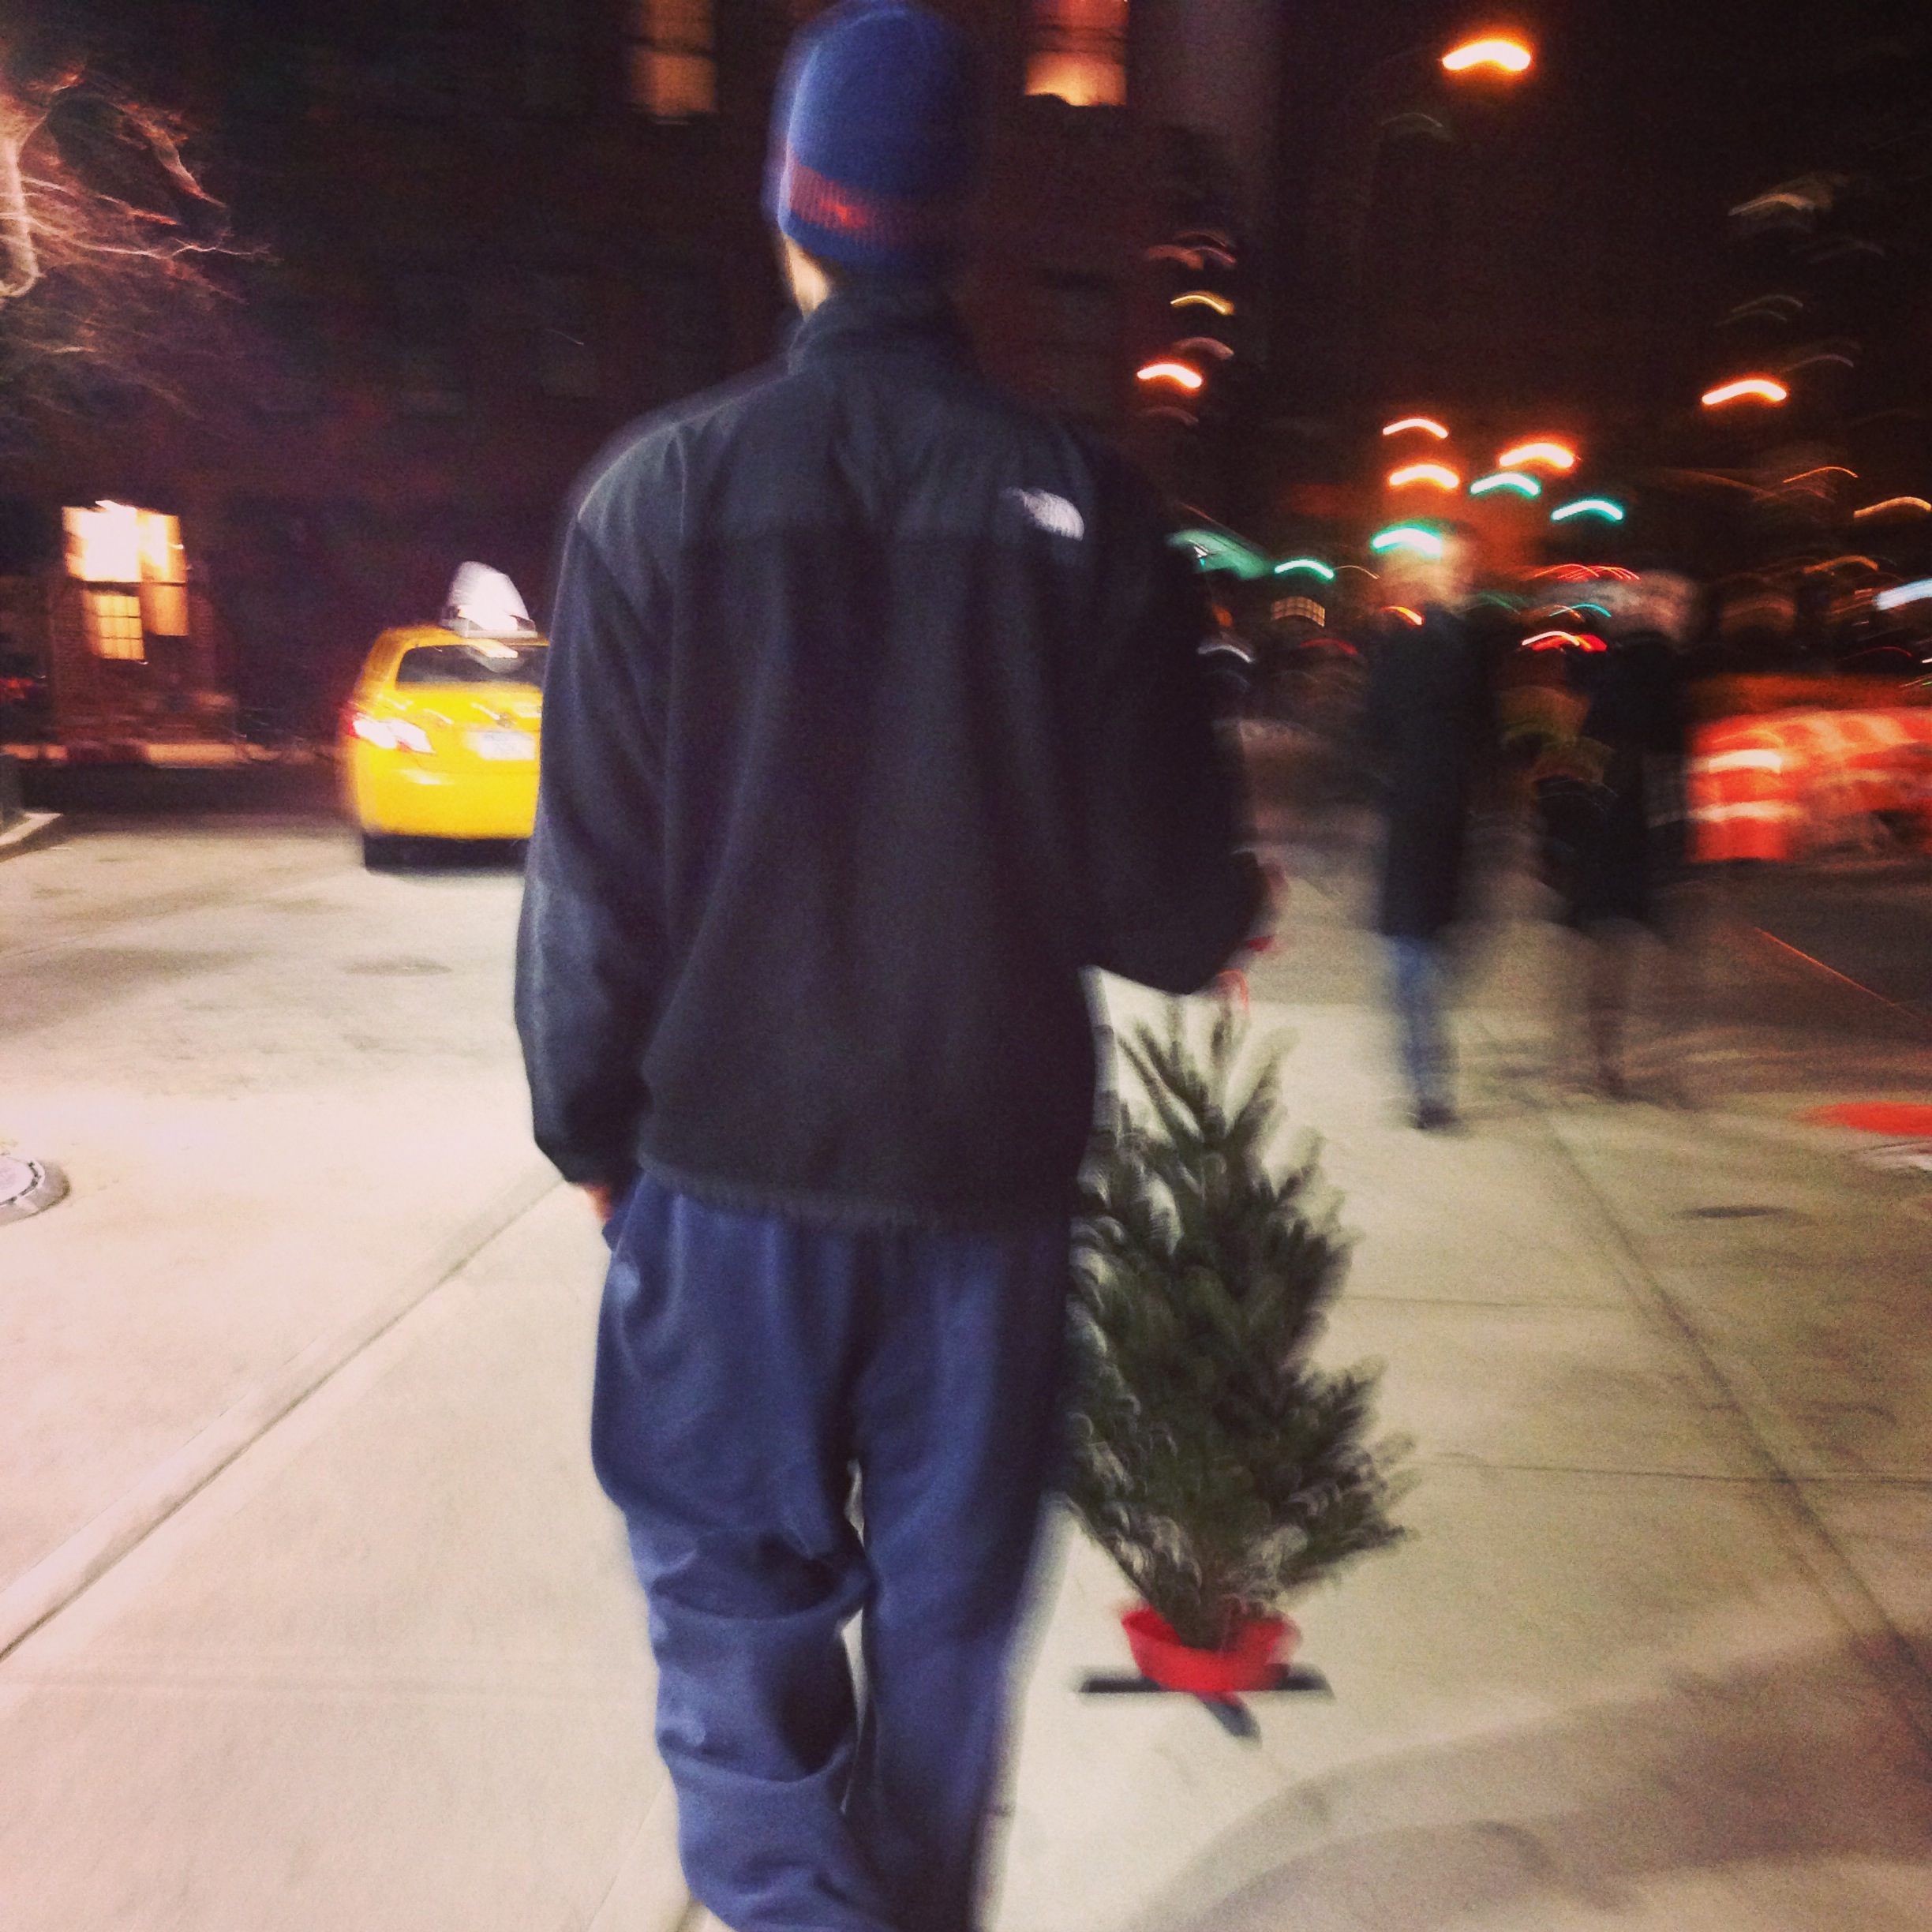 Patrick carrying our Christmas tree